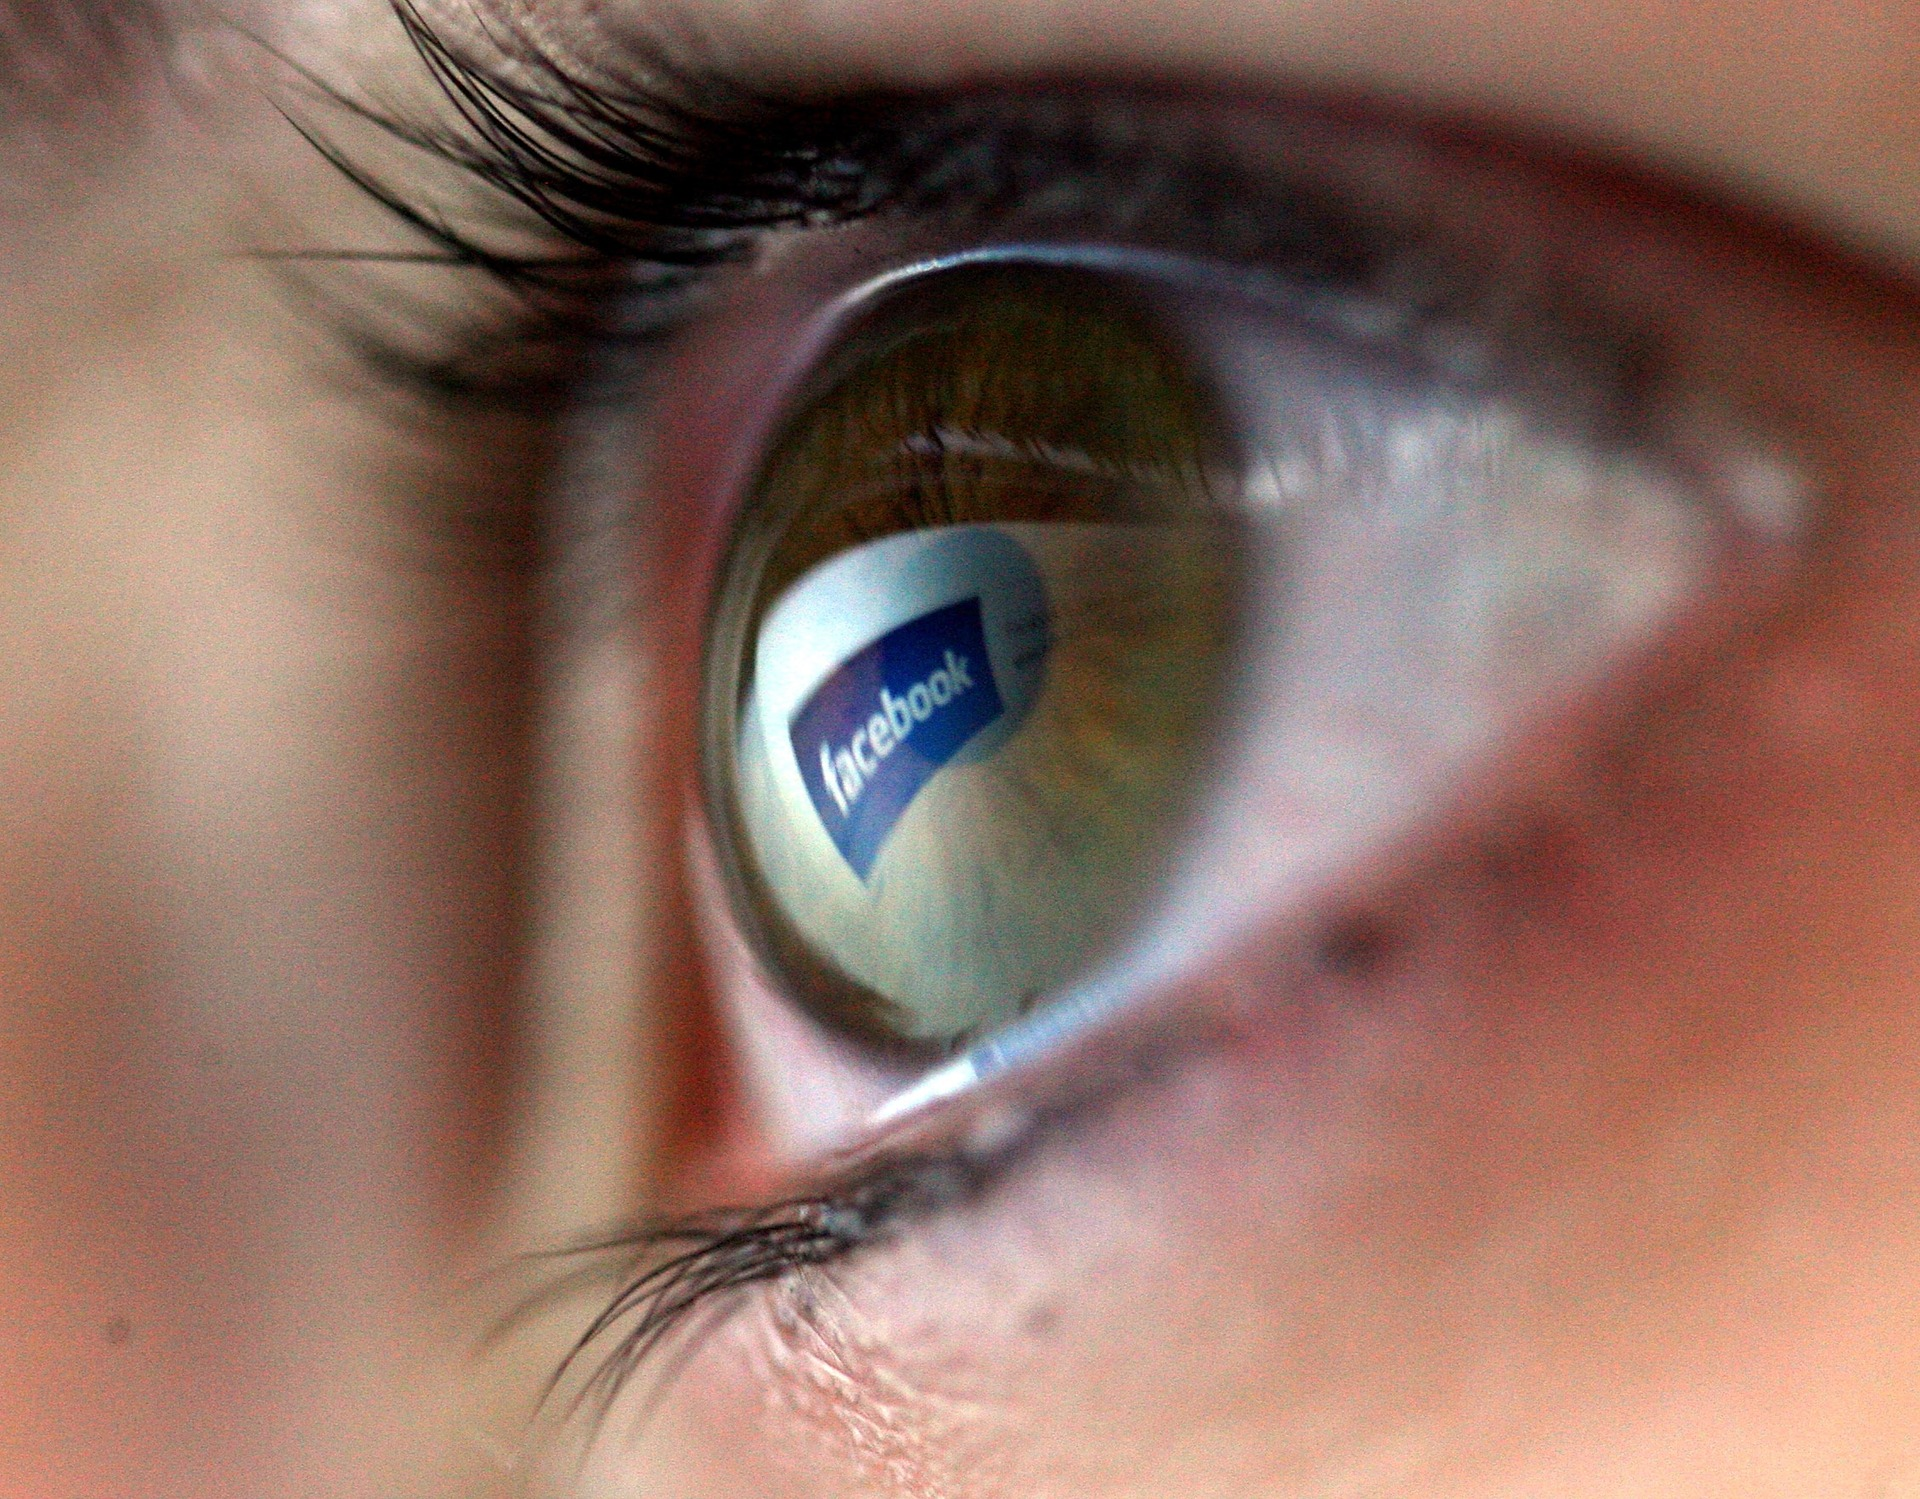 Facebook launching app that pays users for data on app usage